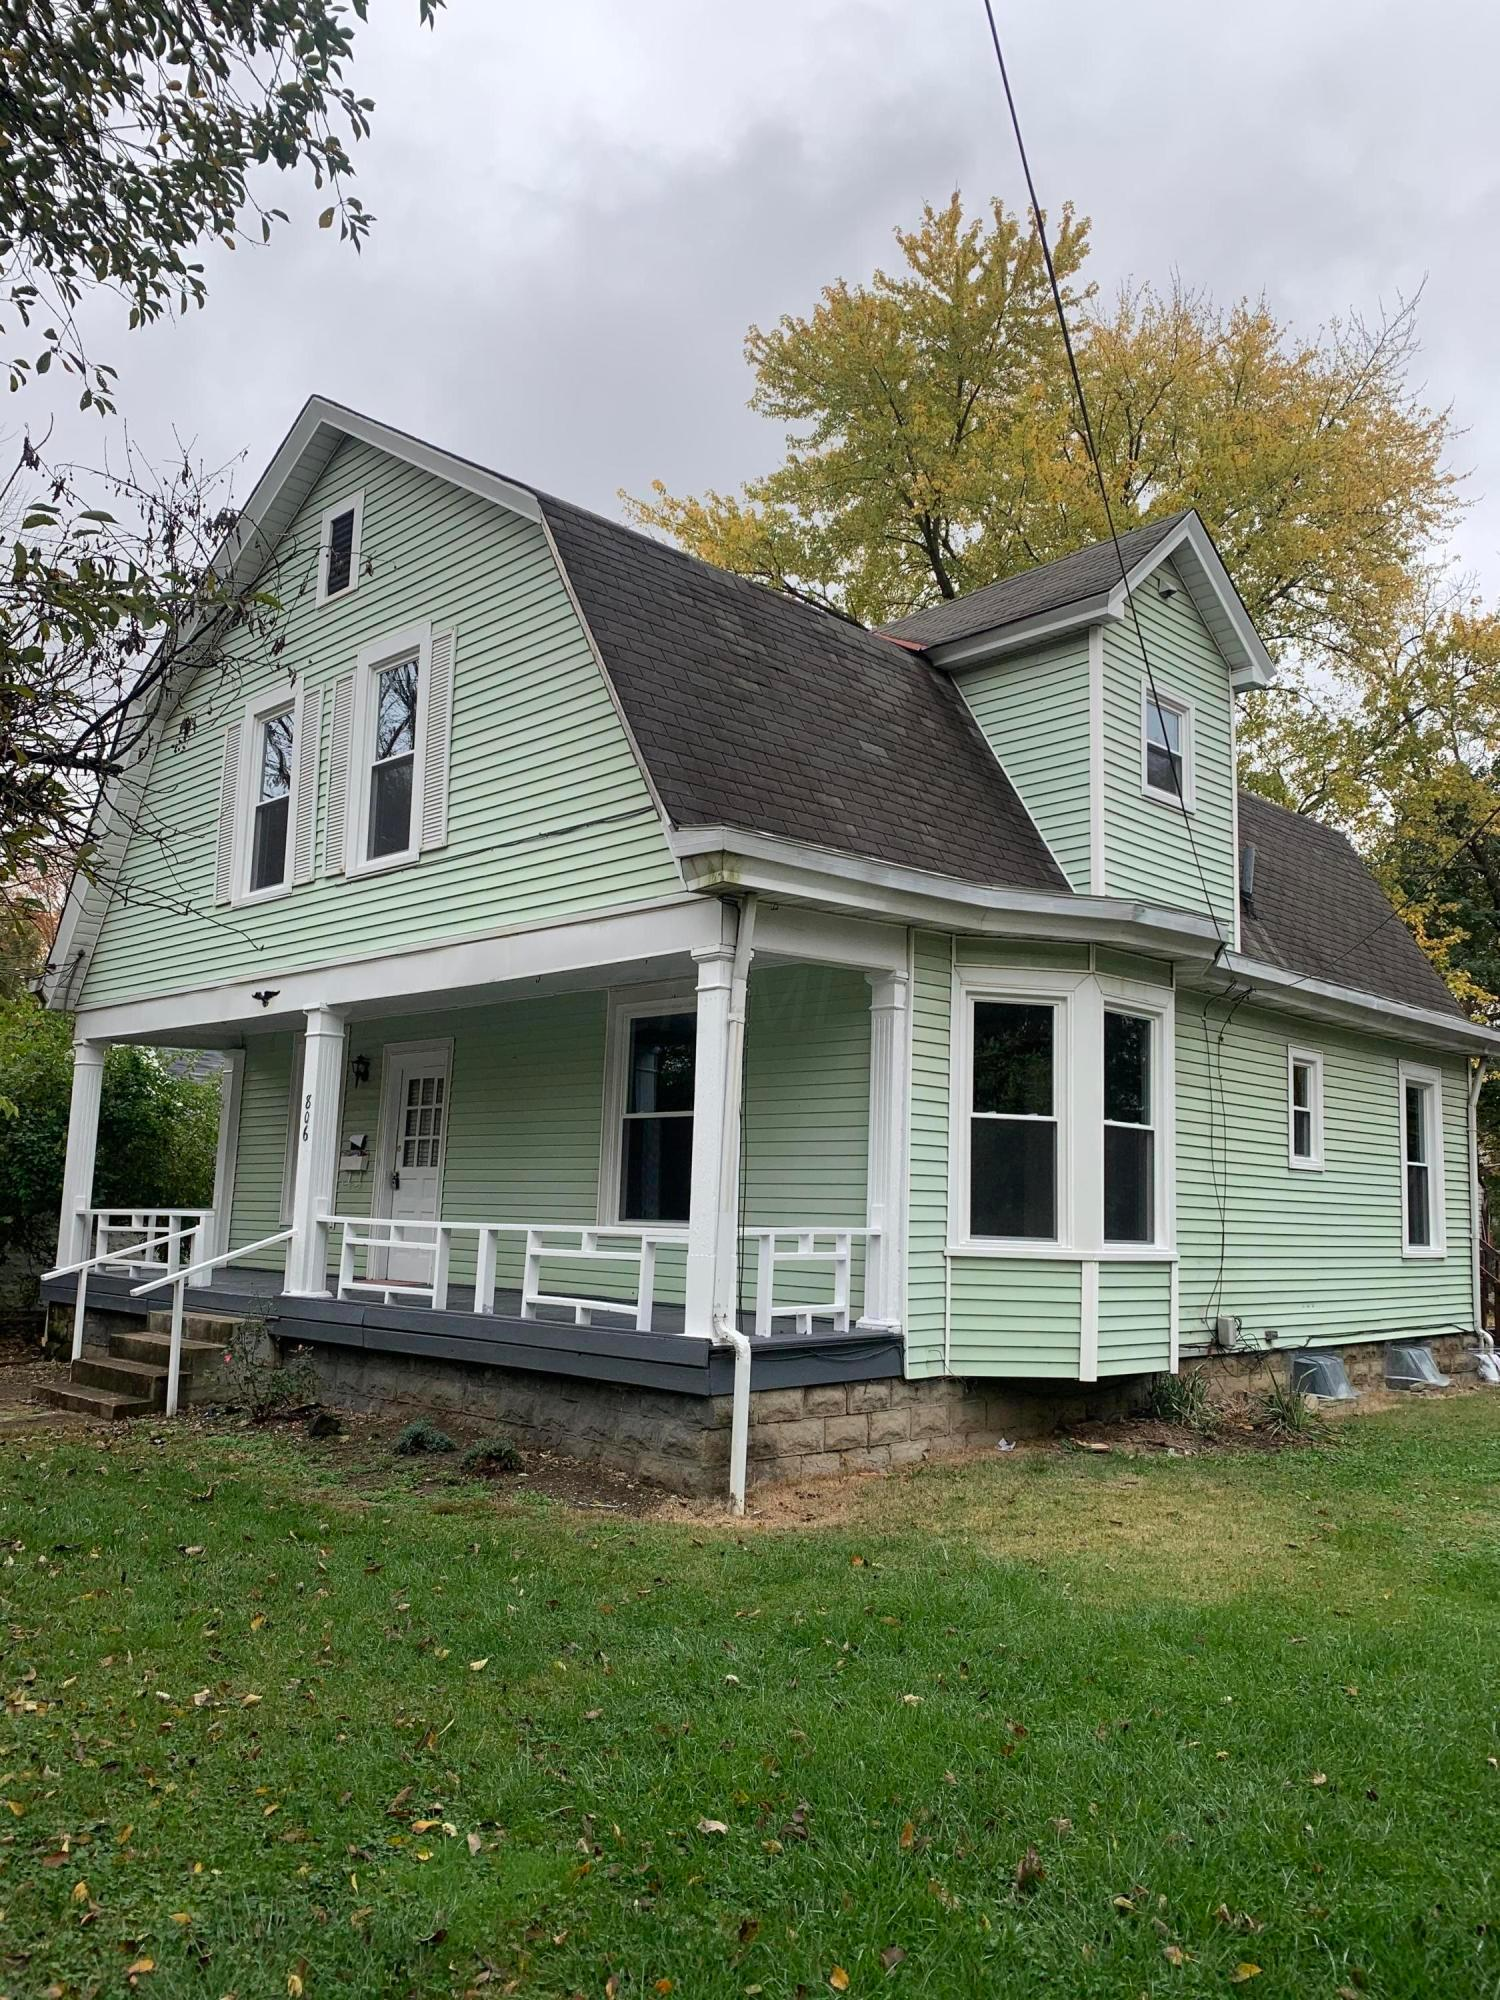 Property for sale at 806 College Avenue, Bexley,  Ohio 43209